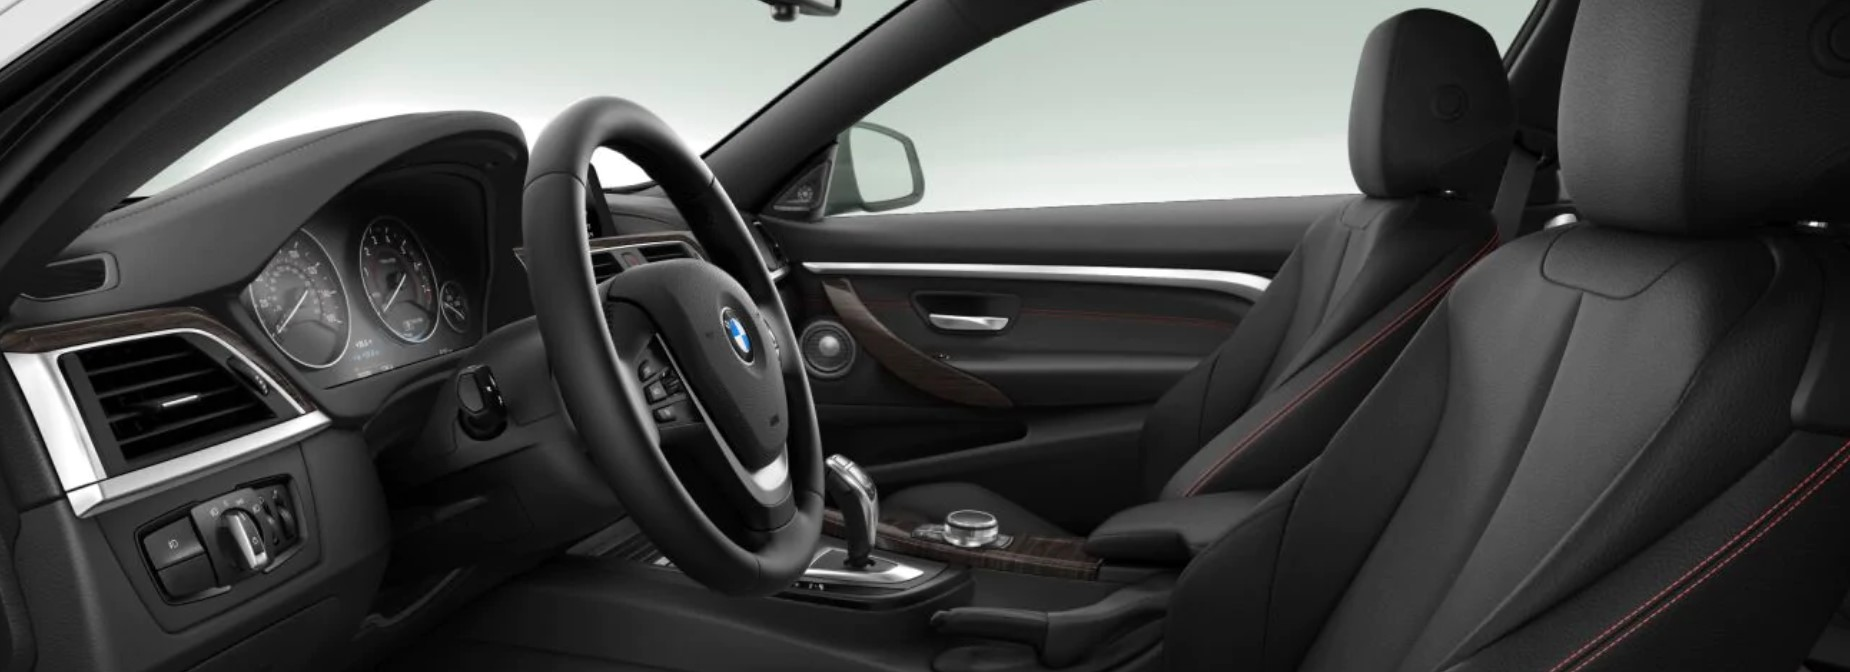 2018 BMW 440i Black Interior